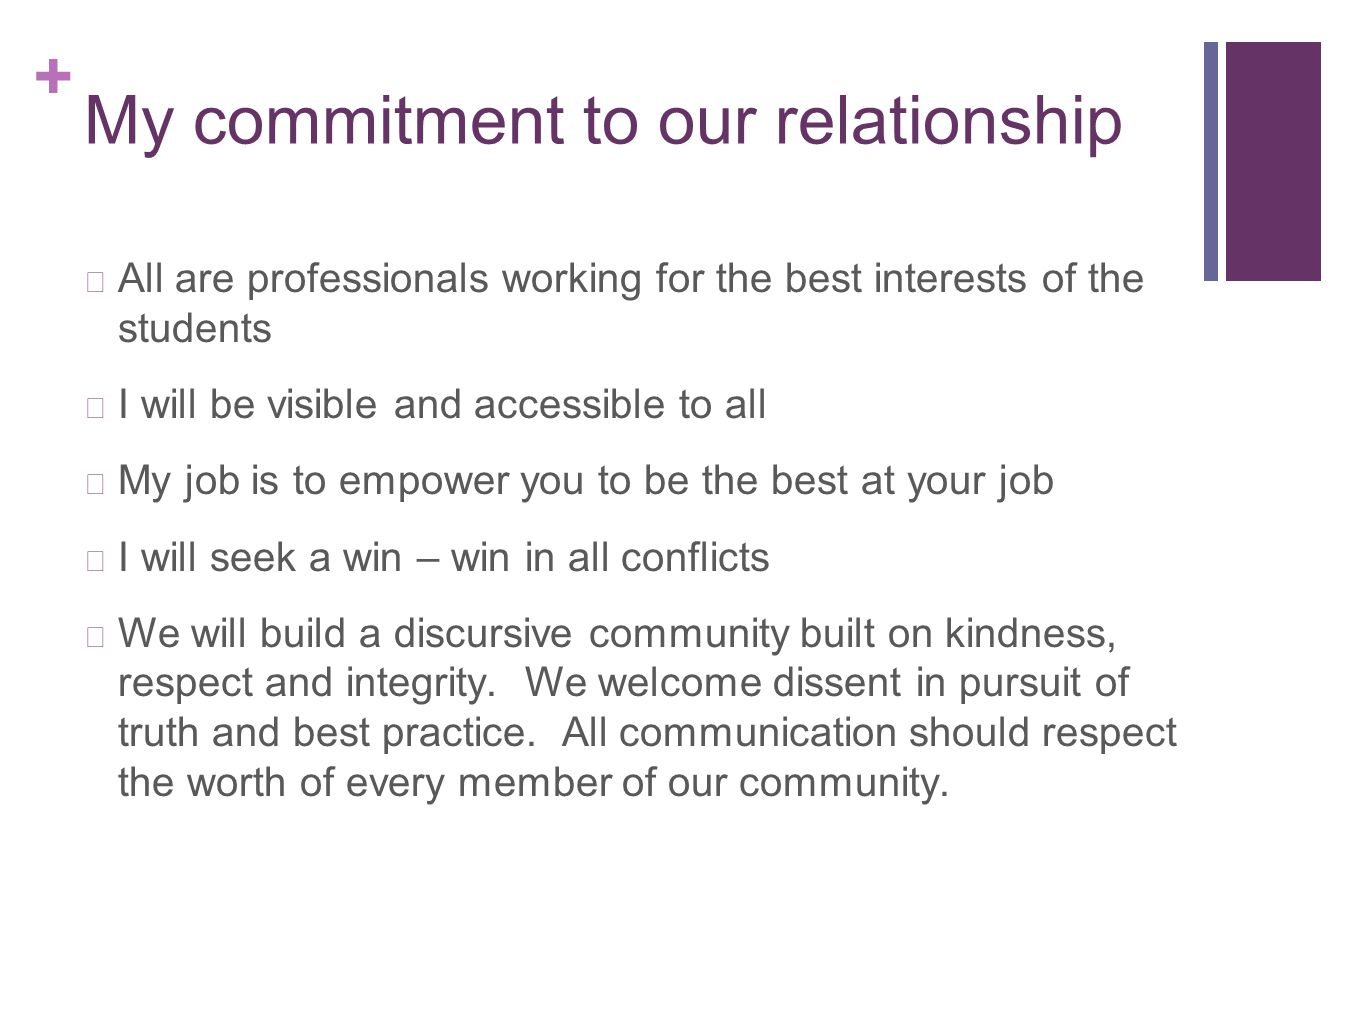 + My commitment to our relationship All are professionals working for the best interests of the students I will be visible and accessible to all My job is to empower you to be the best at your job I will seek a win – win in all conflicts We will build a discursive community built on kindness, respect and integrity.